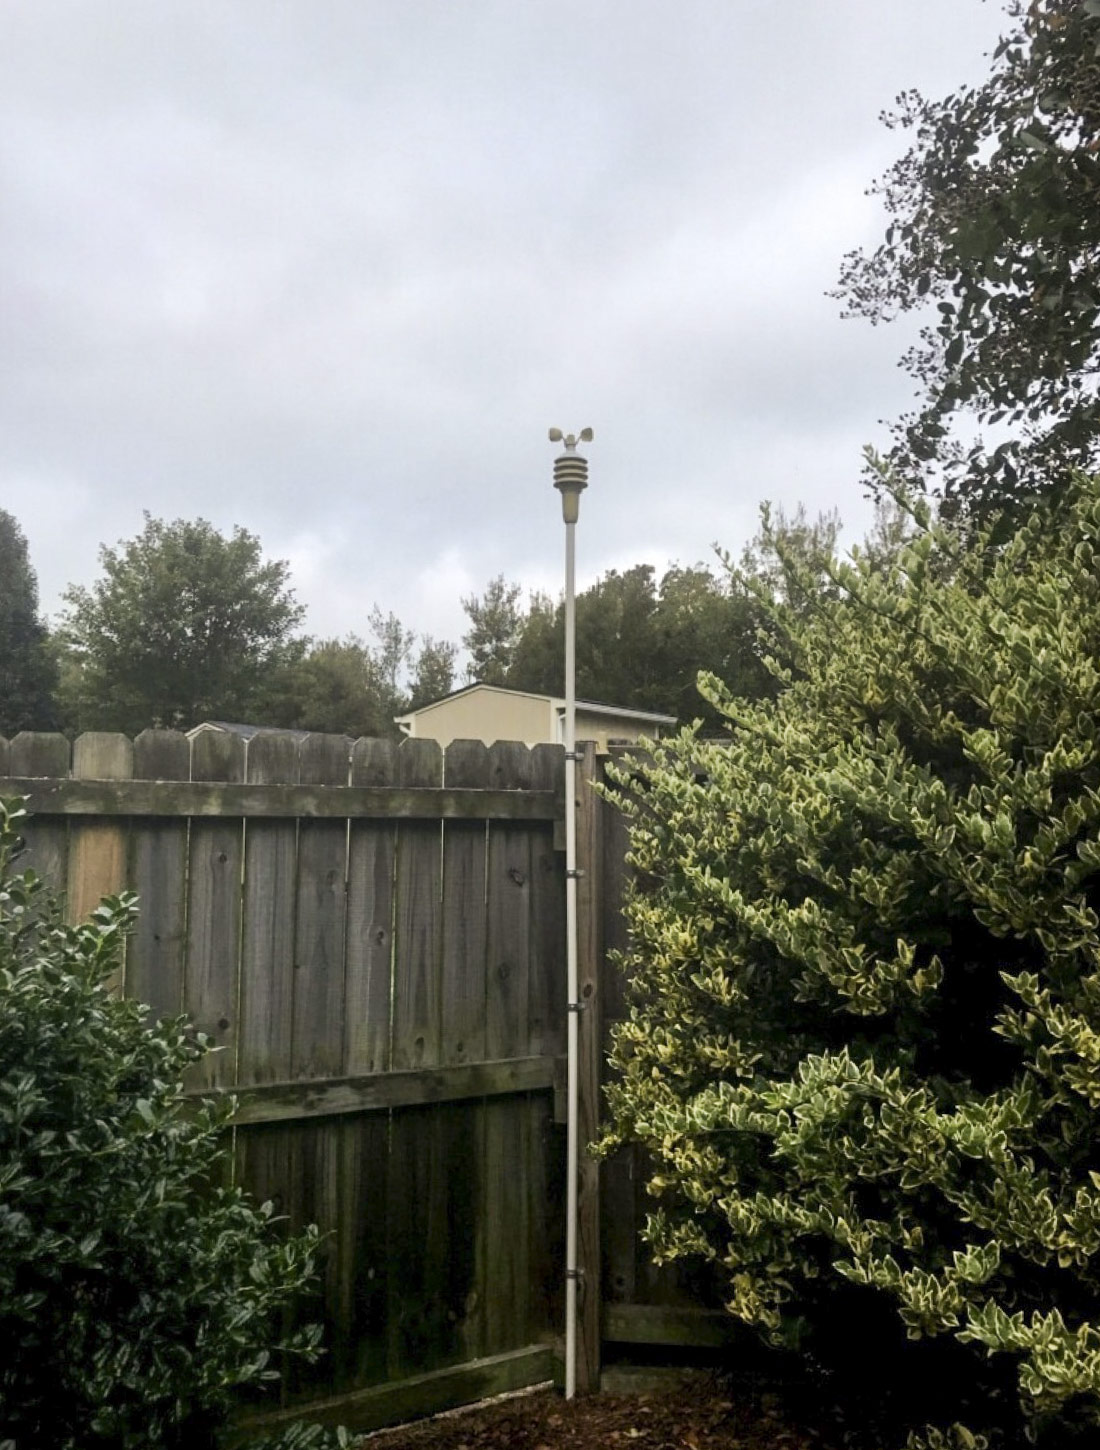 Head-on view of 5-in-1 Weather Station mounted outdoors